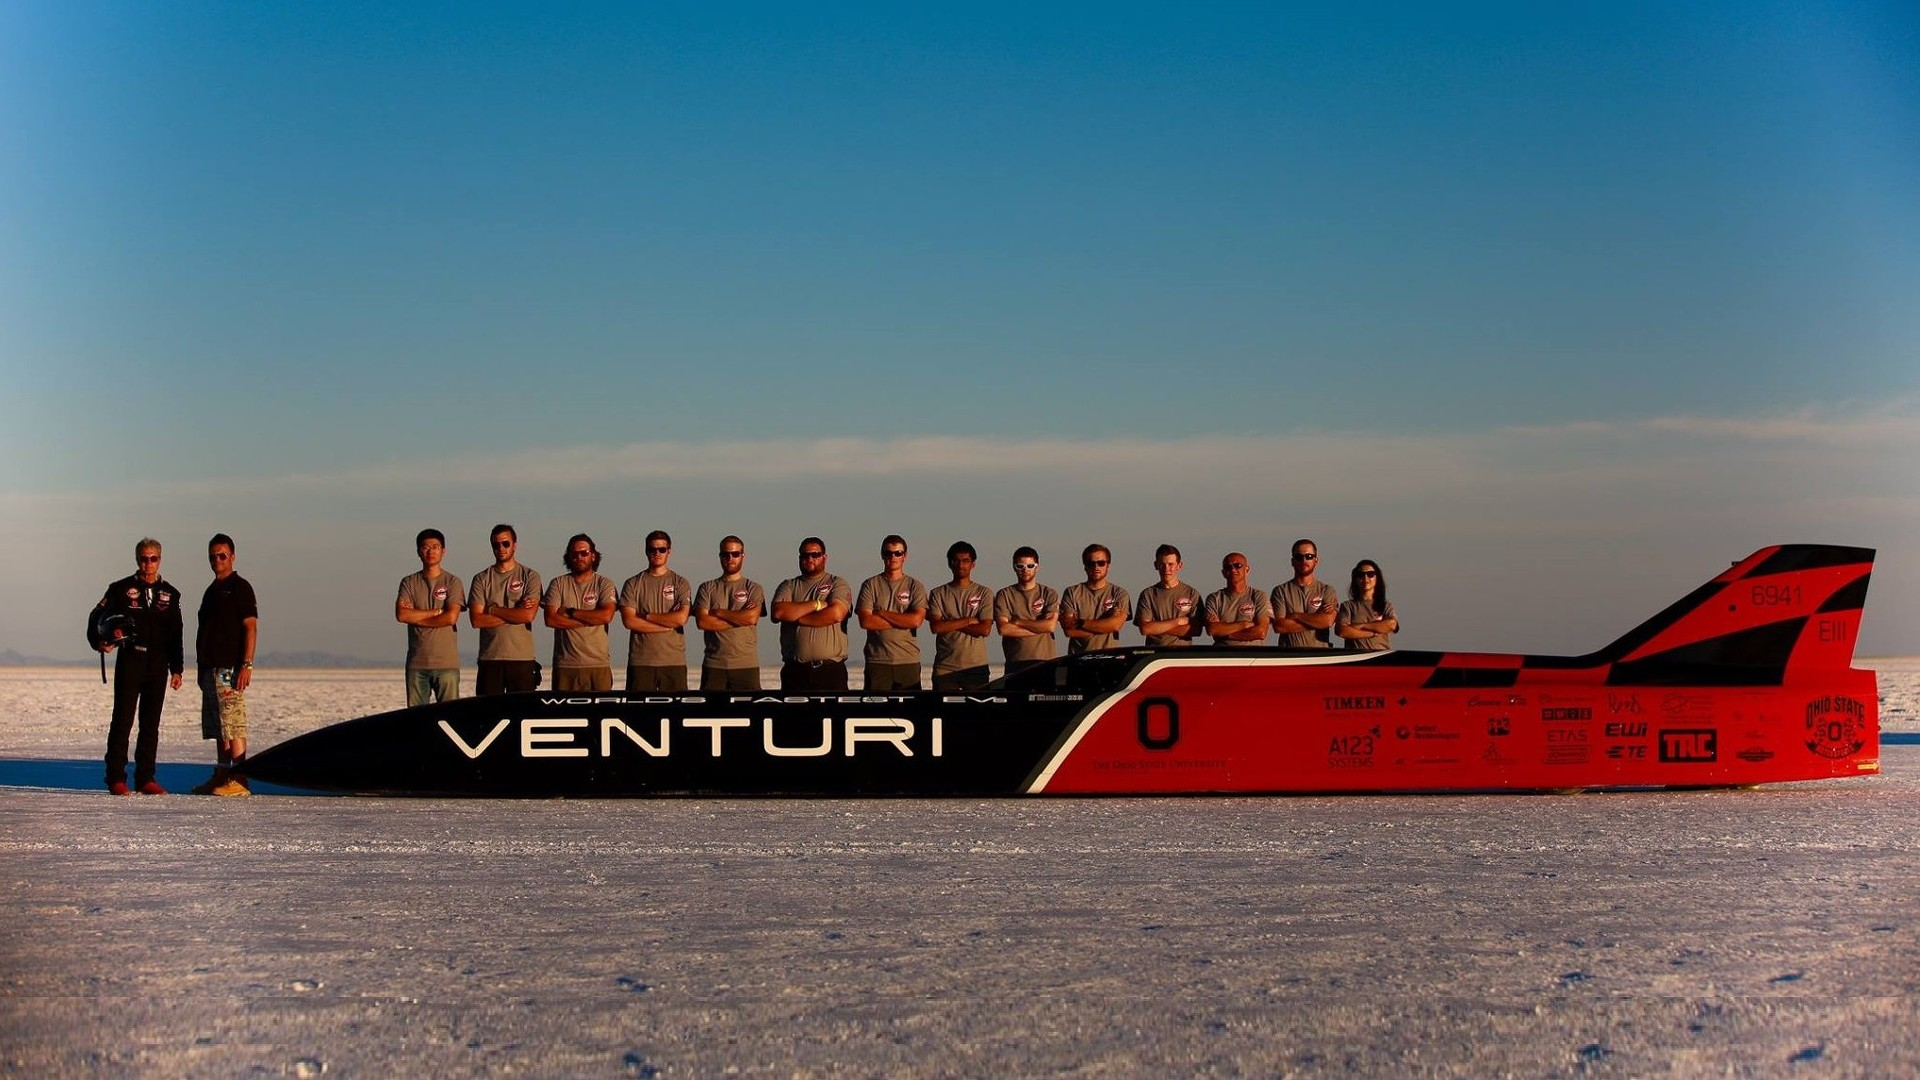 The worlds fastest electric car - Venturi Vbb 3 Is The World S Fastest Electric Car At 341 Mph Product 2016 09 26 08 41 06